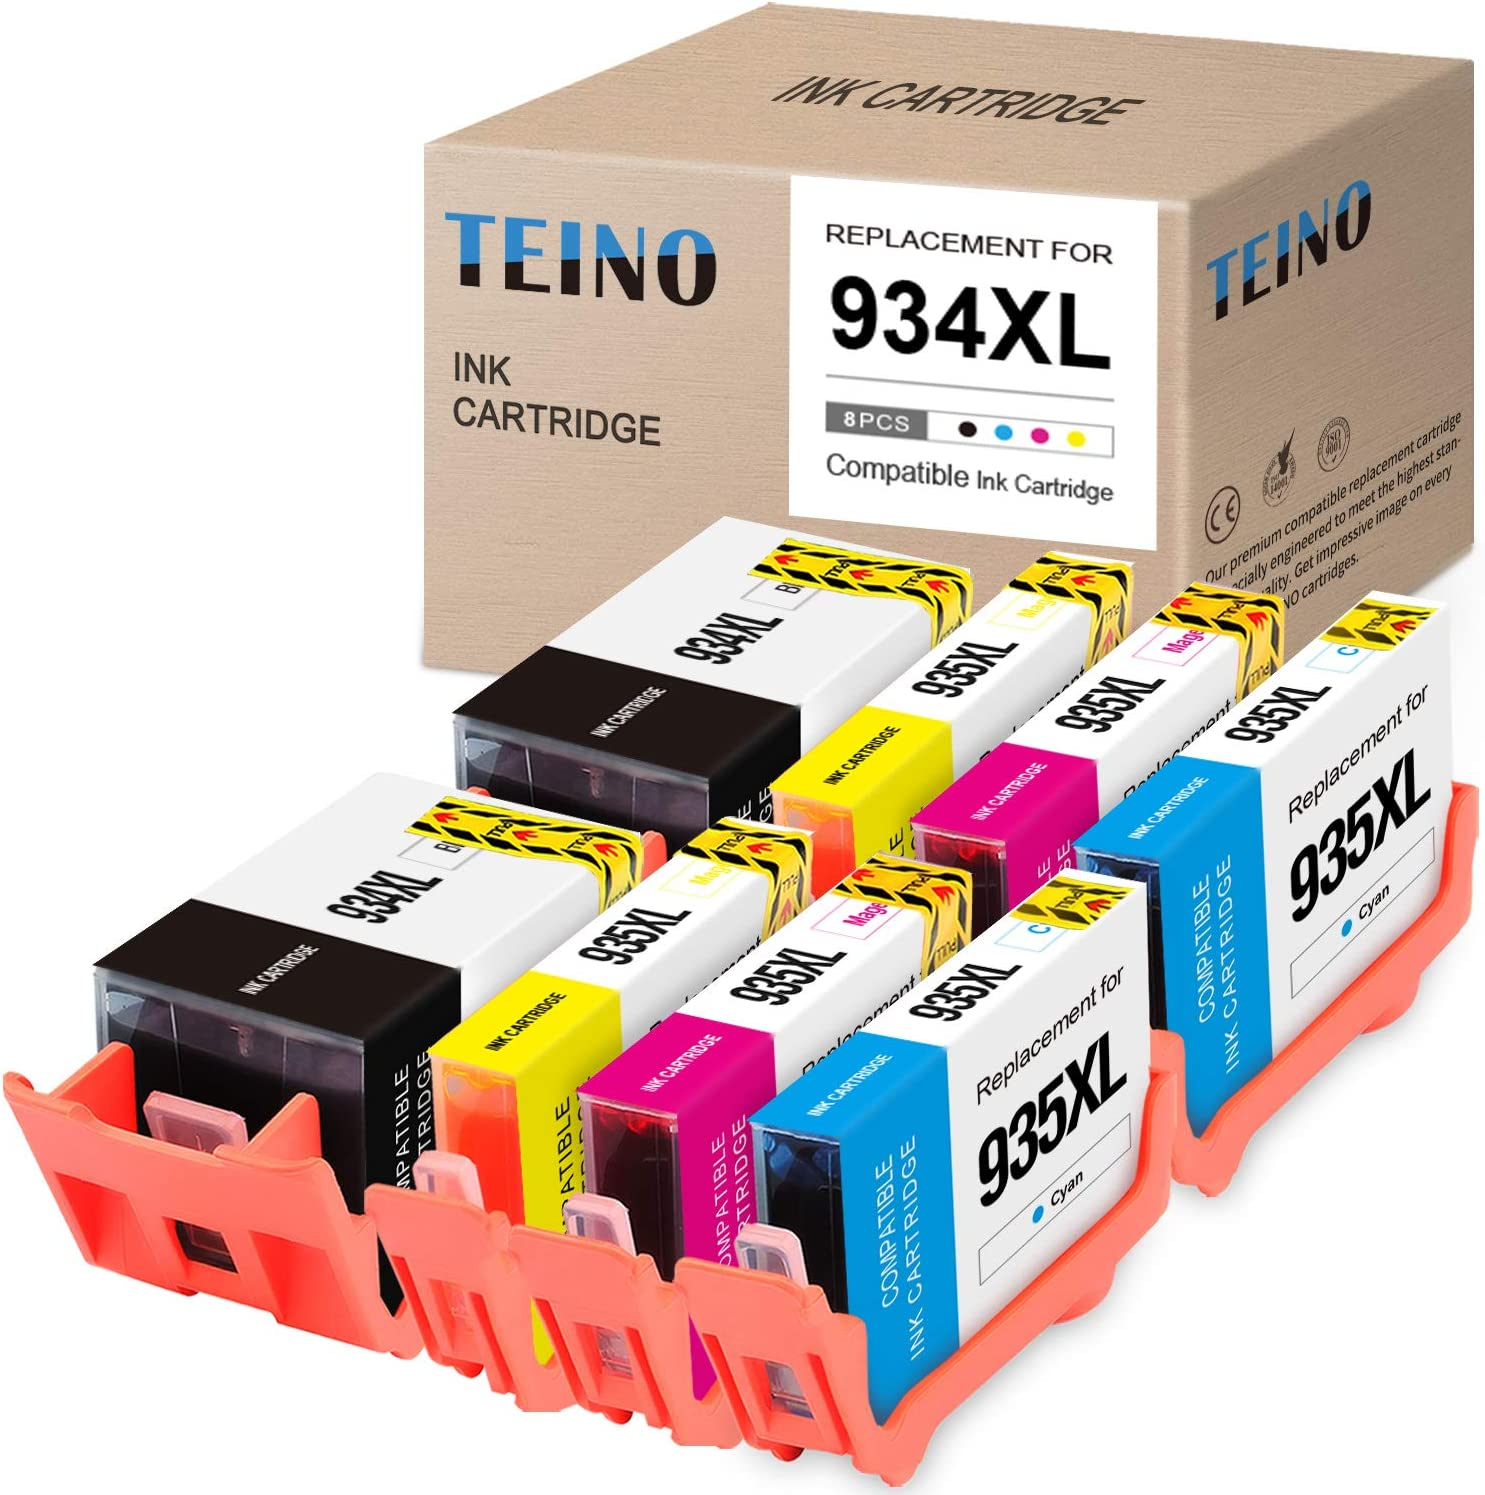 TEINO Compatible Ink Cartridges Replacement for HP 934 934XL 935 935XL use with HP OfficeJet Pro 6230 6830 6835 OfficeJet 6812 6815 6220 6810 6820 (Black, Cyan, Magenta, Yellow, 8-Pack)